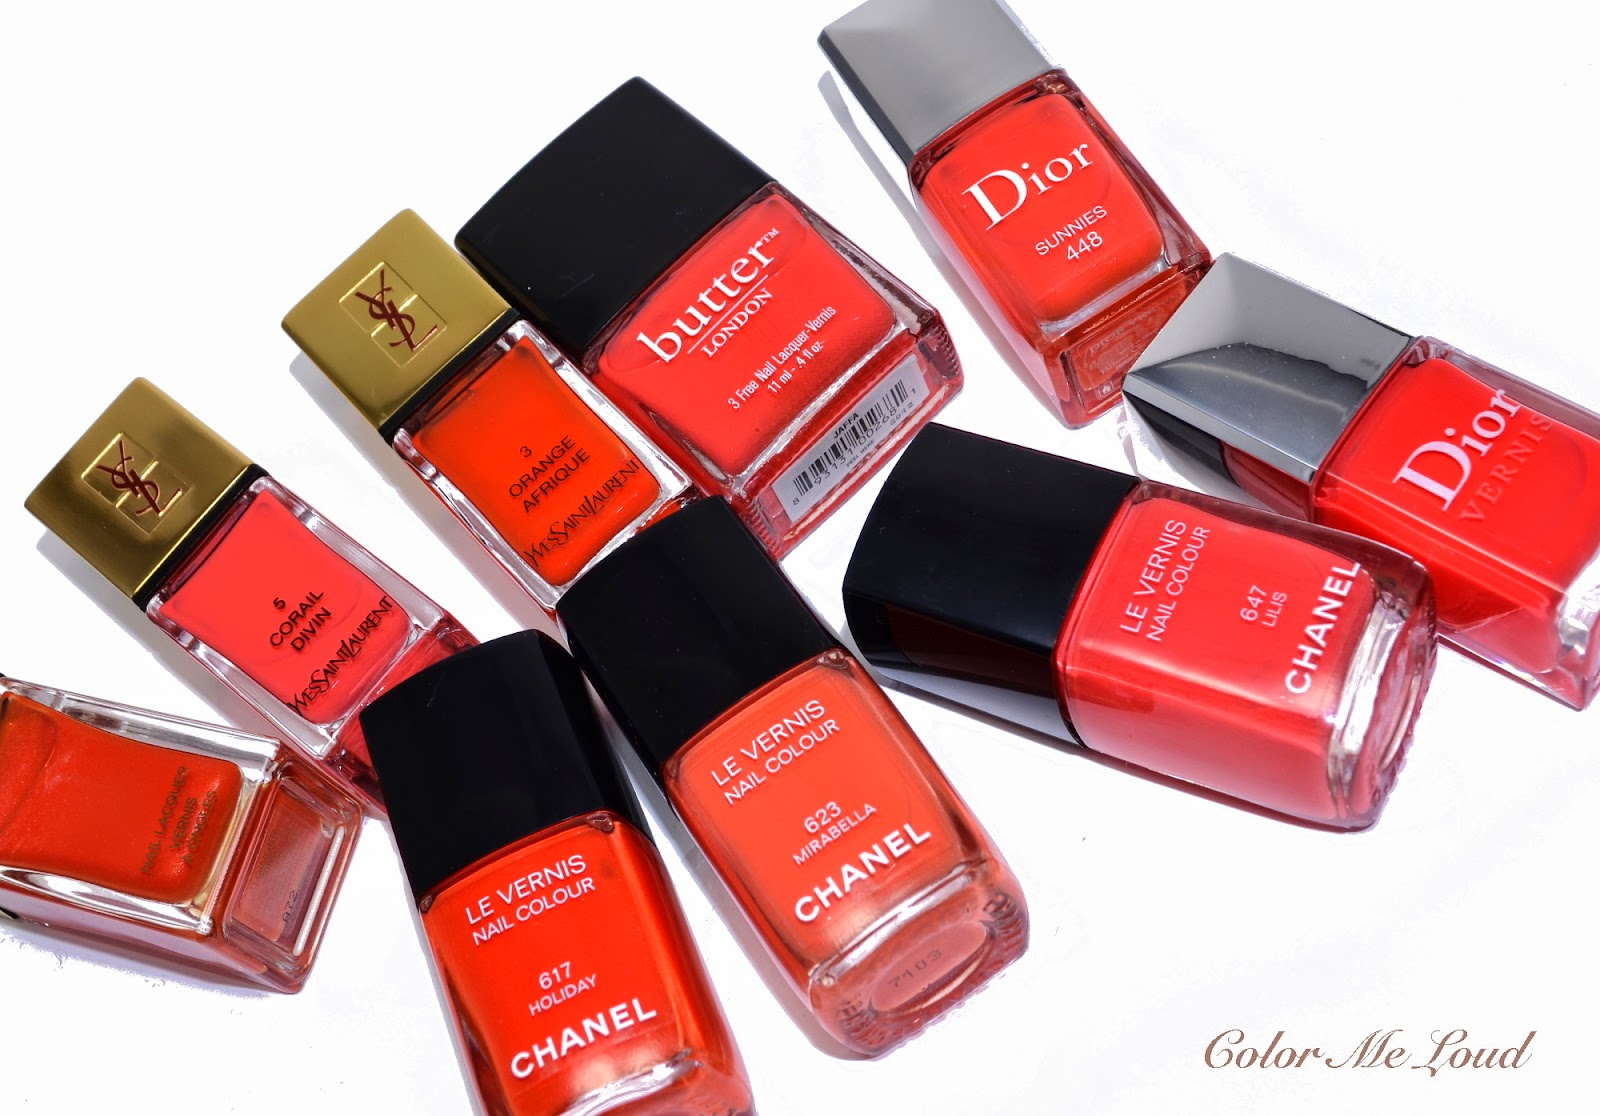 Chanel Le Vernis 623 Mirabella And Similar Nail Polishes In My Stash I Pulled Out Some Shades Which Cumulates Over The Years Search Of Perfect